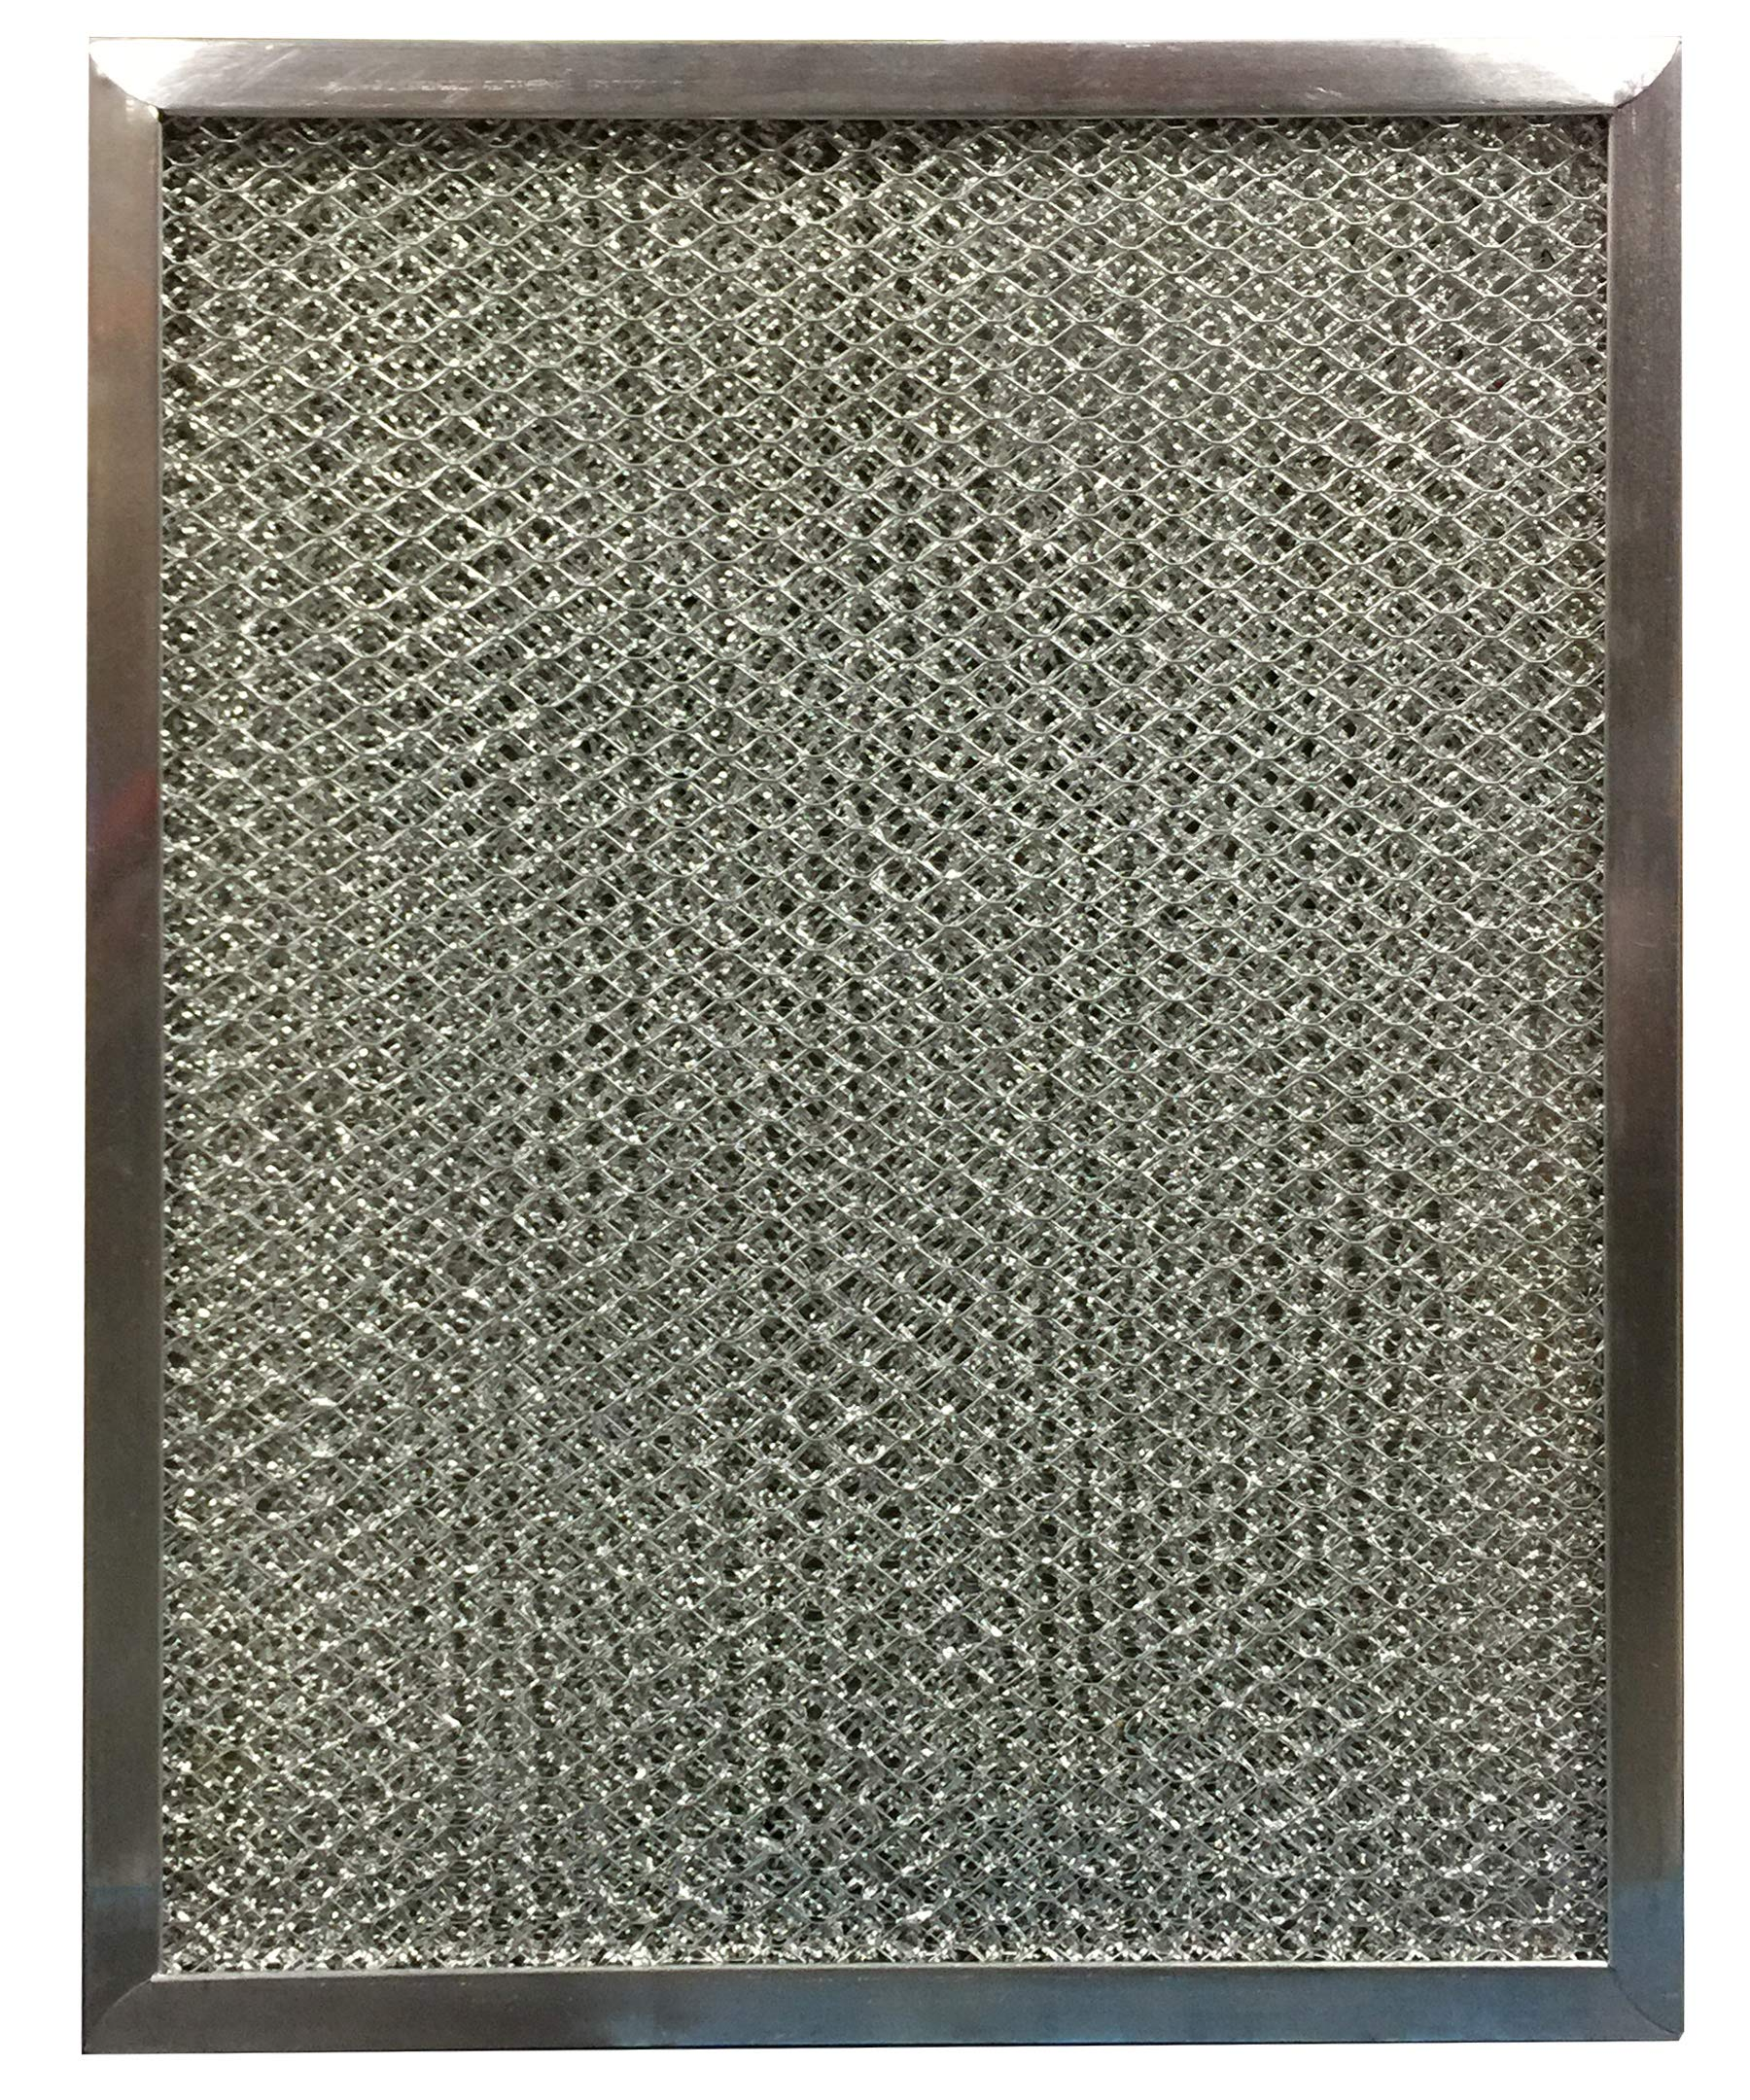 Replacement Filters for Thermal Edge NE050, NE060, NE080 Air Conditioners - Standard Filter - 12 Pack - Exp. Alum, 250 Micron, 60% Efficiency - 10.3'' W x 16.3'' H